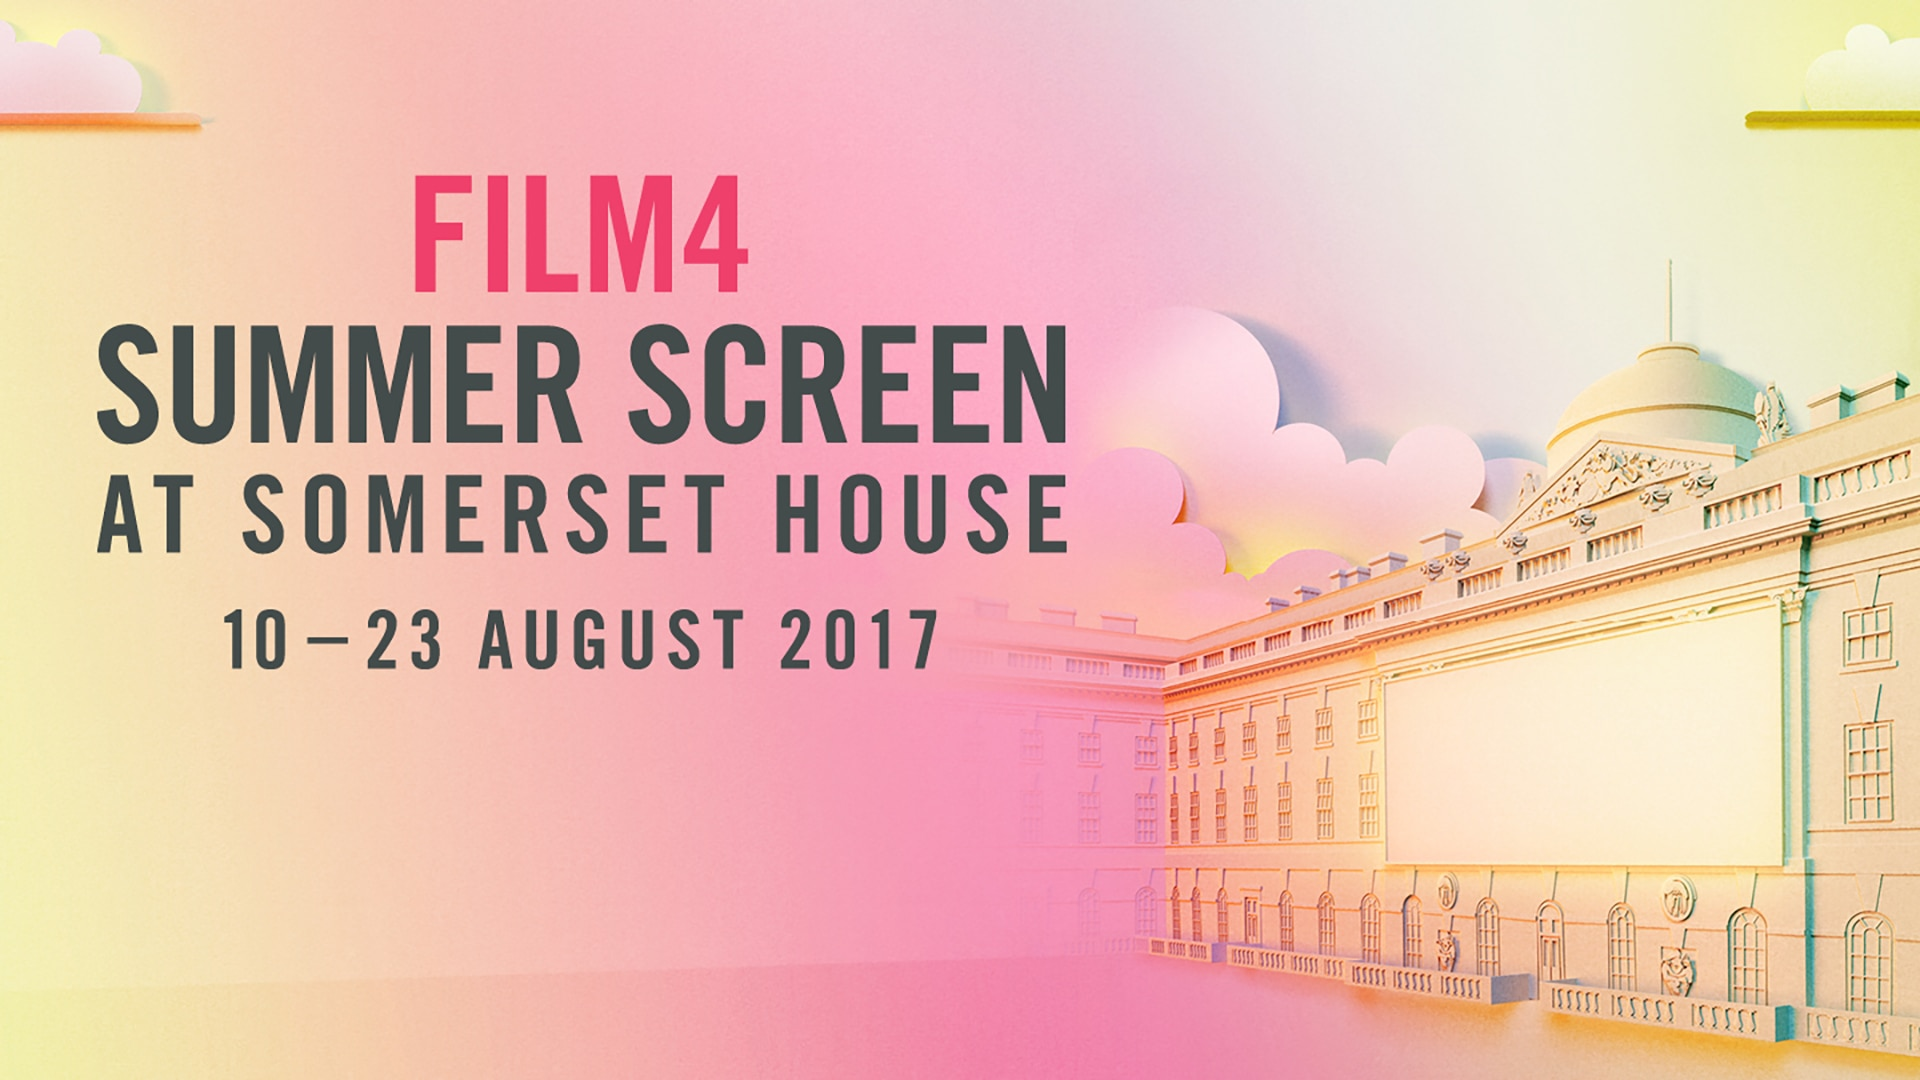 Film4 Summer Screen at Somerset House 2017